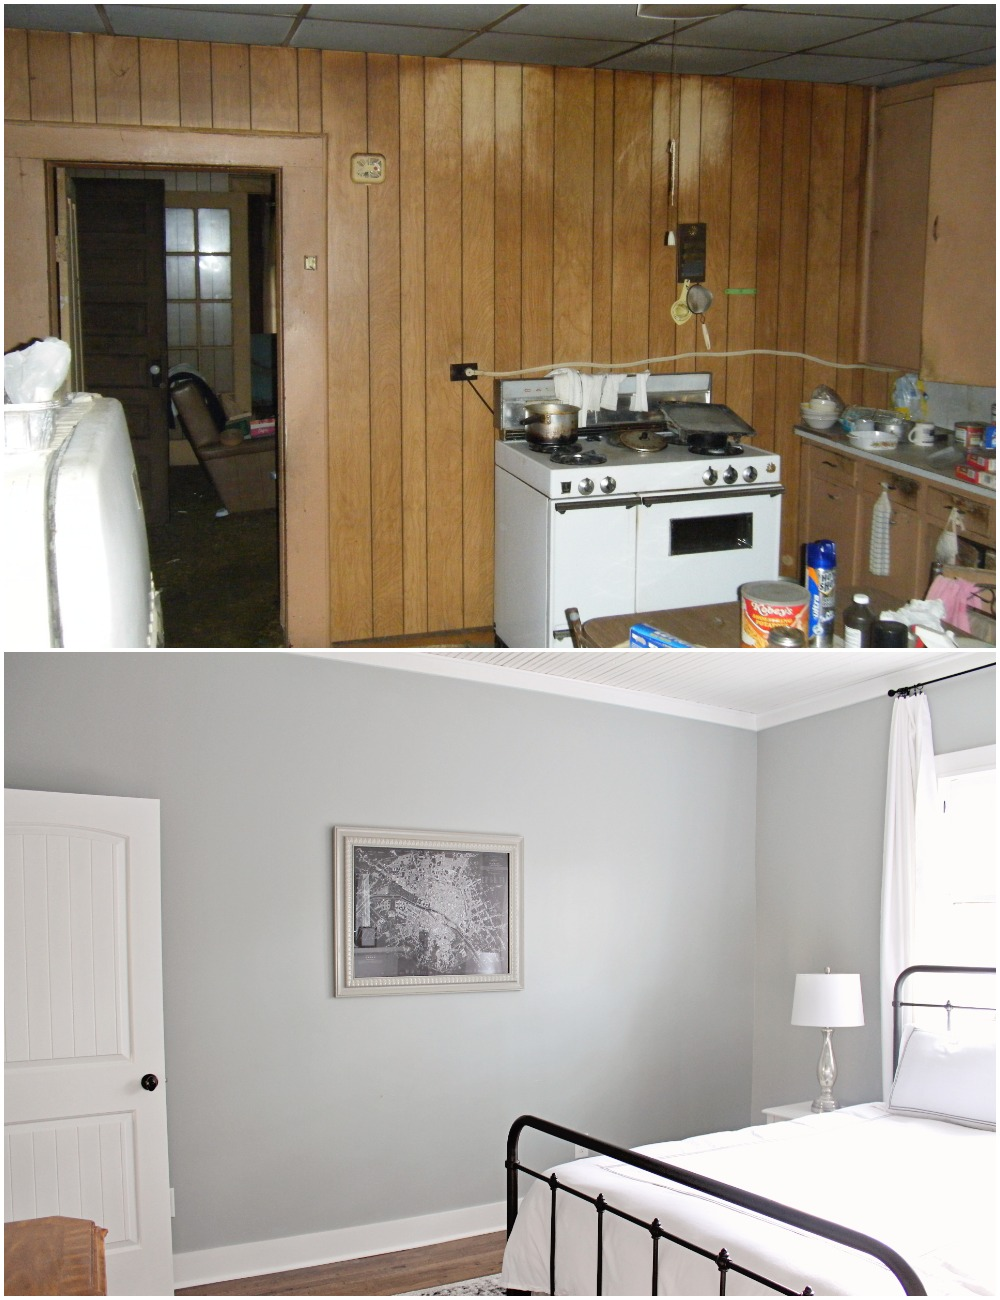 Elizabeth Burns Design  Budget-Friendly Fixer Upper Farmhouse Before and After House Flip - DIY Master Bedroom with Faux Fireplace, Chimney, and Bed Under Windows - Sherwin Williams Magnetic Gray (5).jpg